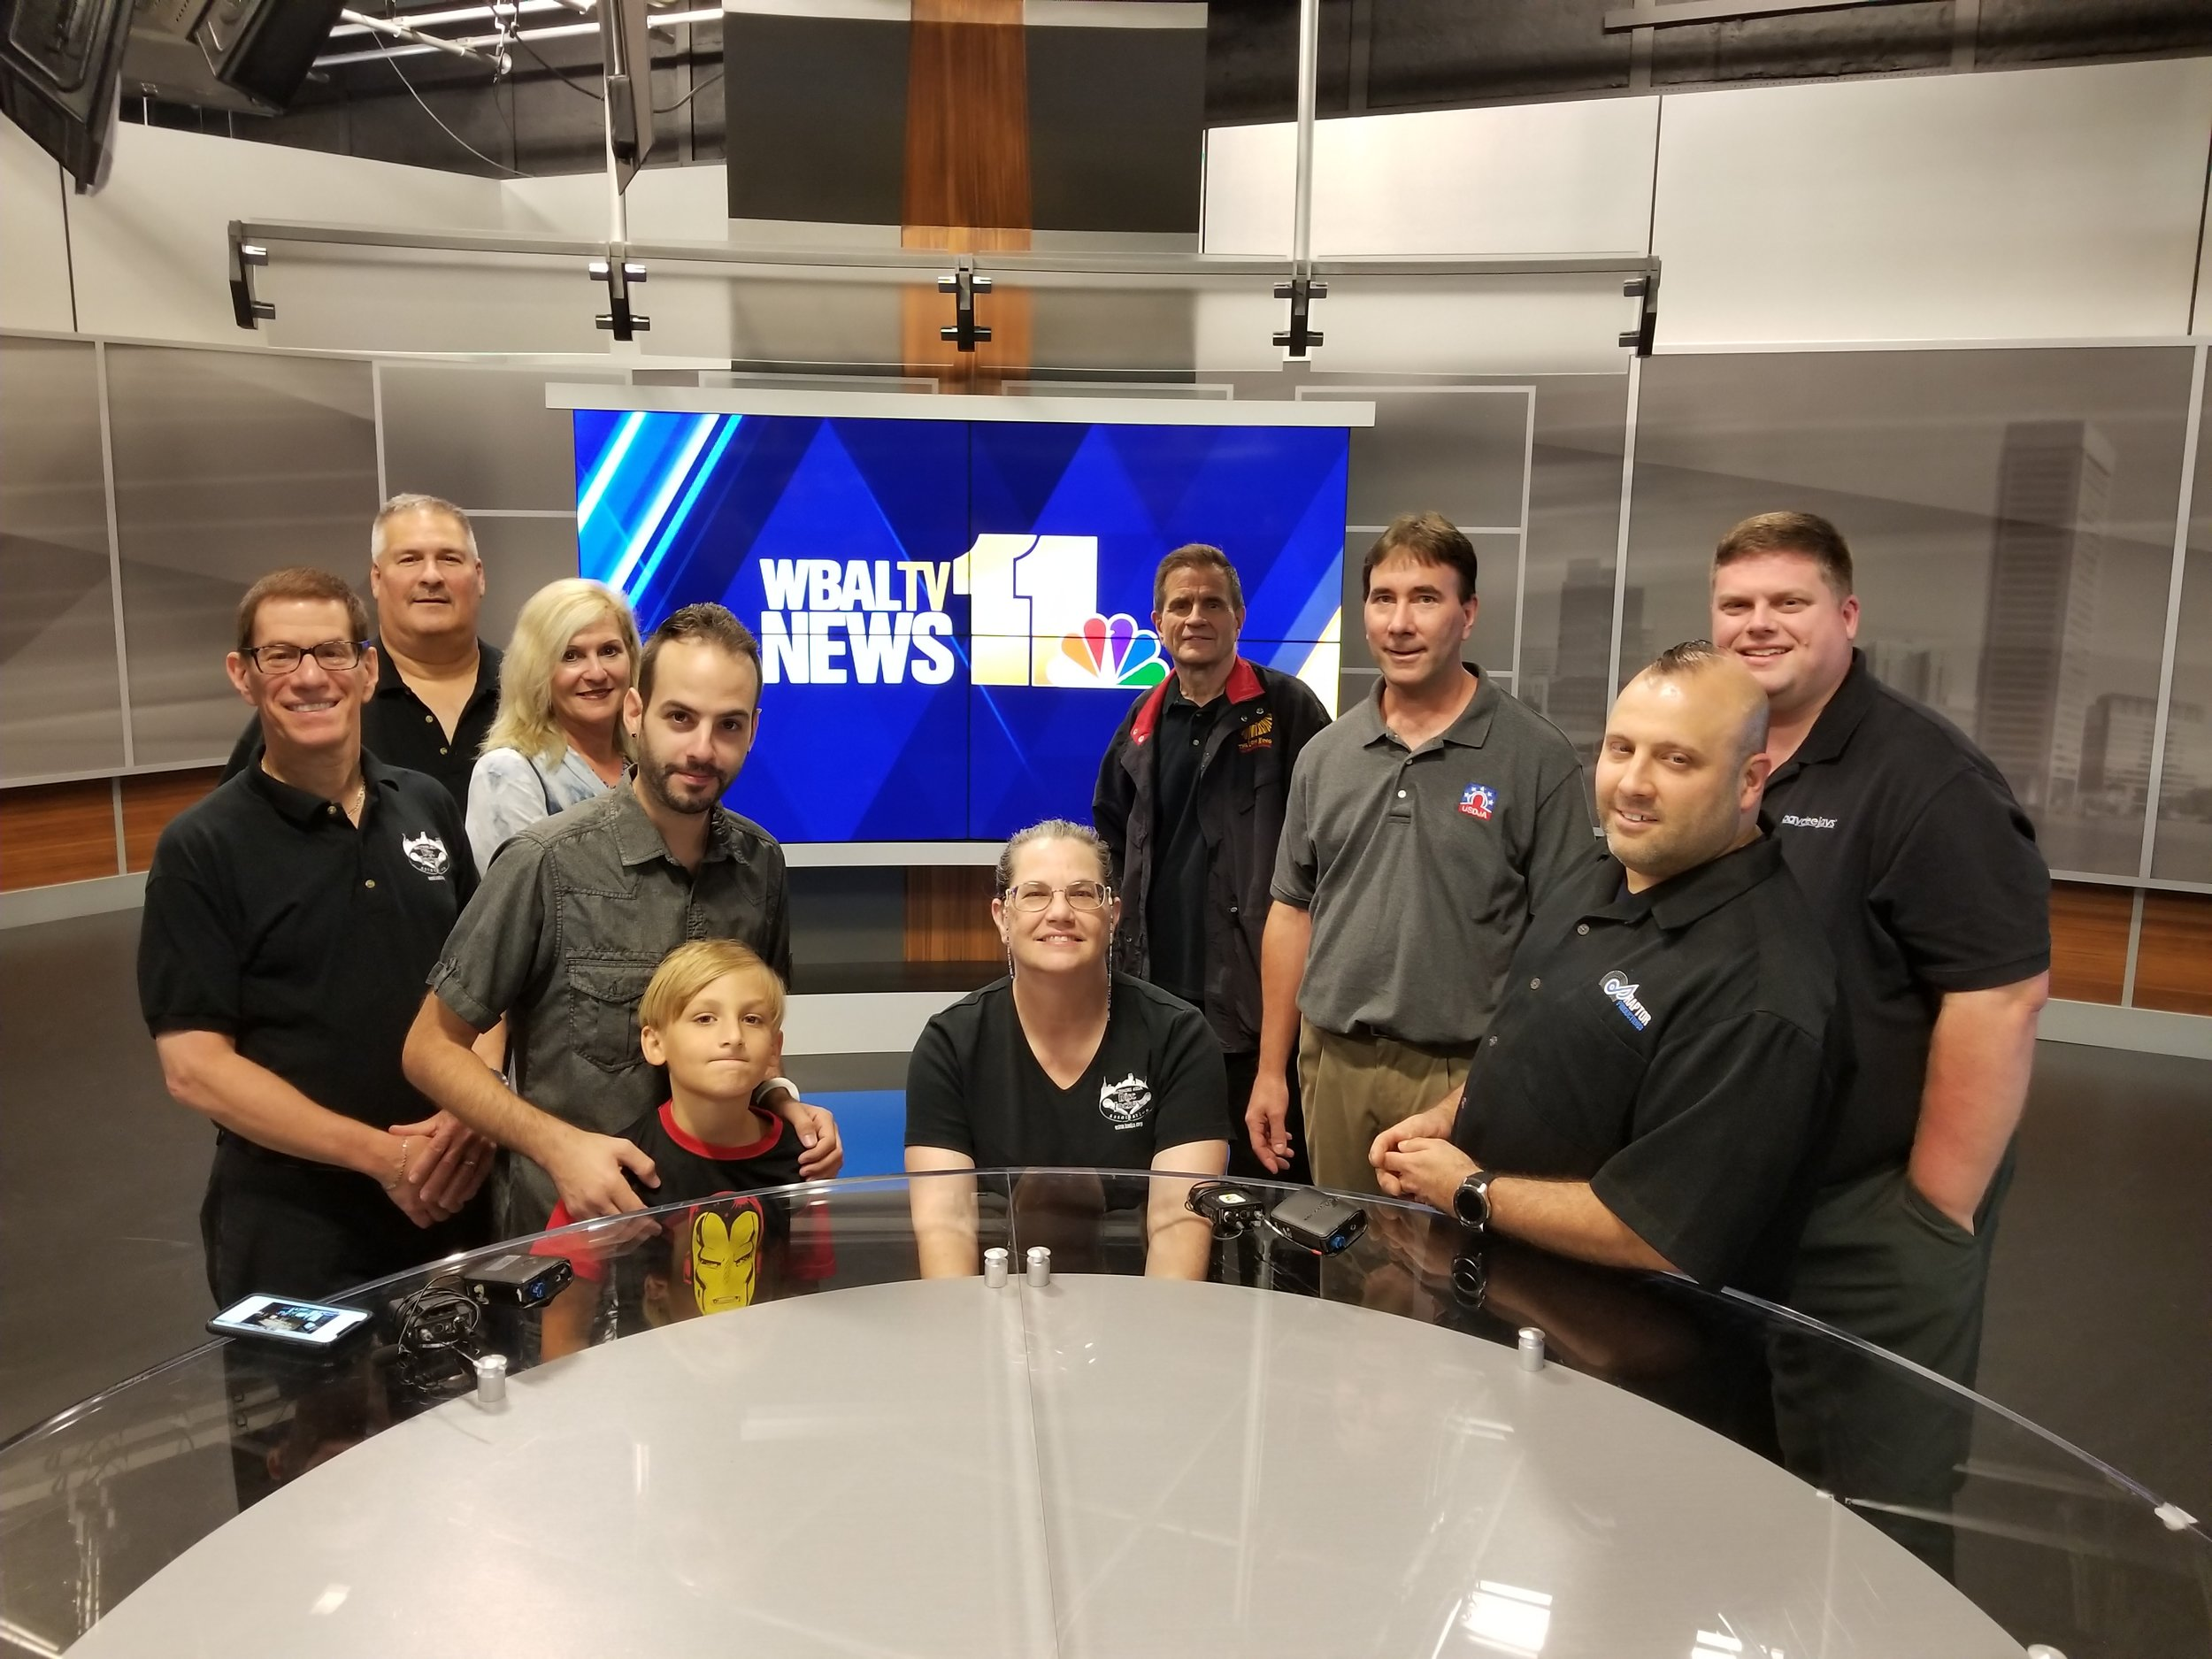 Jason (back, far right) and some members of the Baltimore Area Disc Jockey Association visit WBAL-TV, WBAL Radio, and 98Rock, all part of our monthly continuing DJ education.